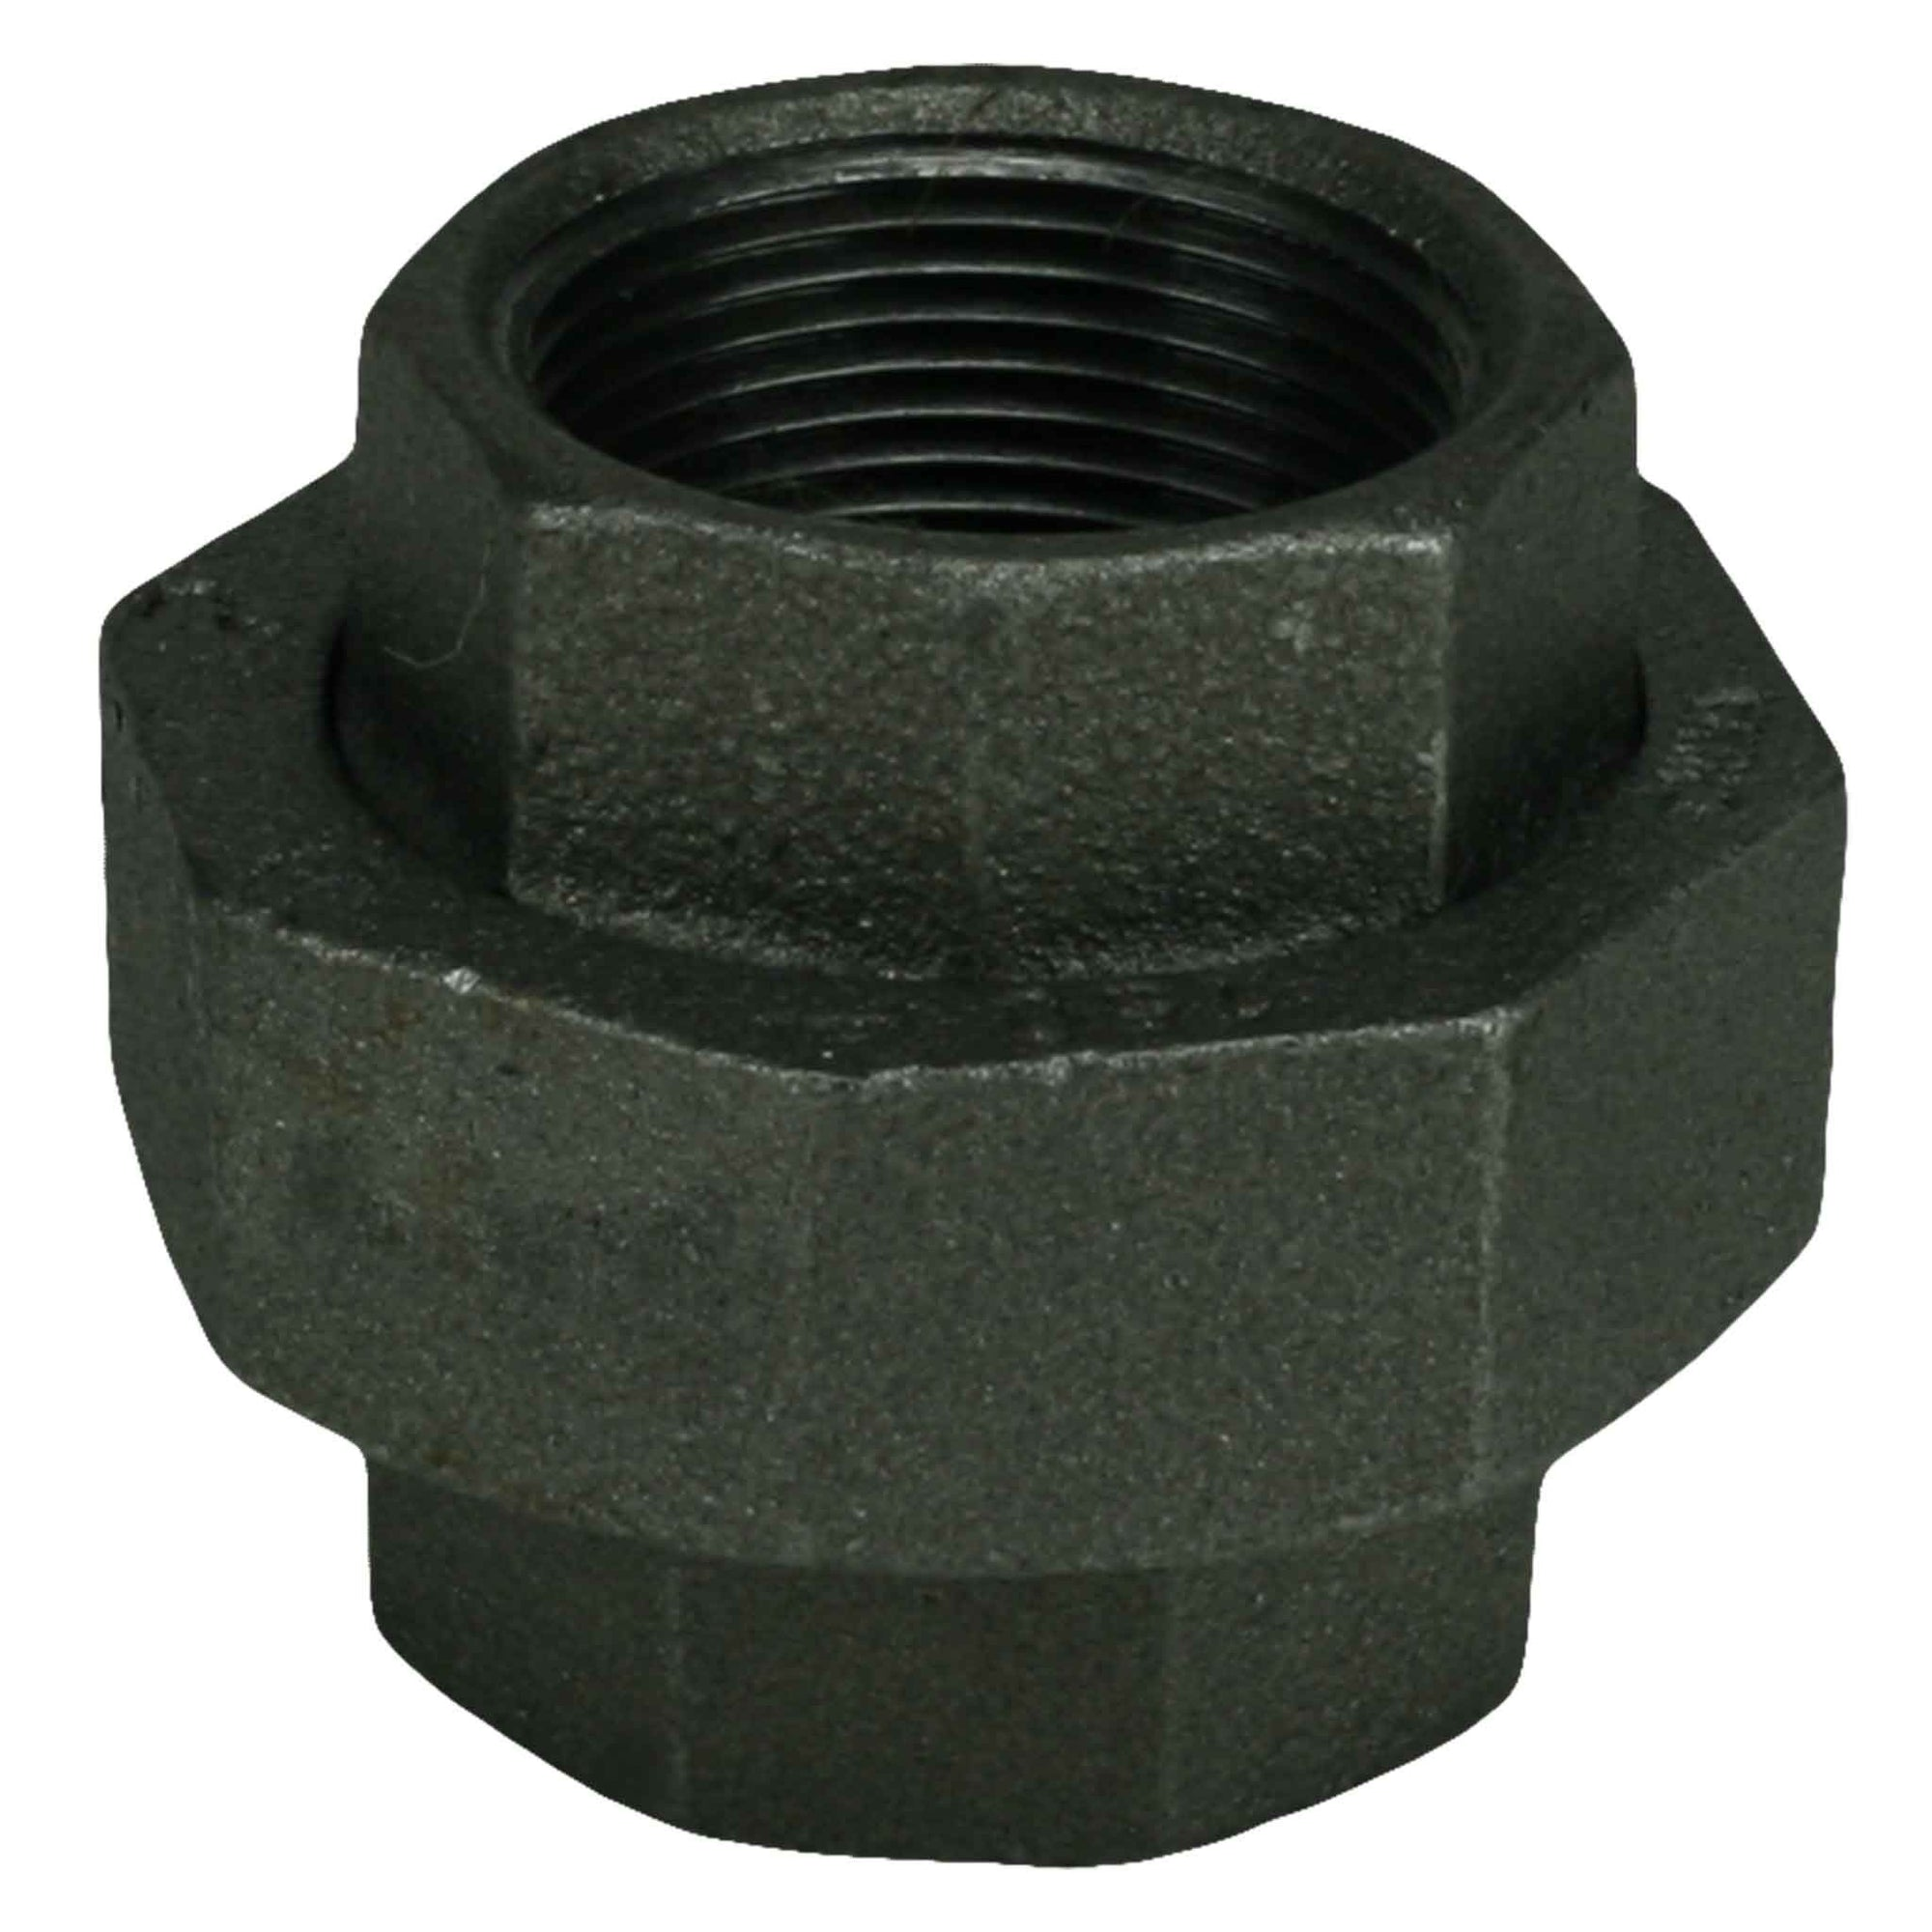 "1-1/4"" Black Iron Union"